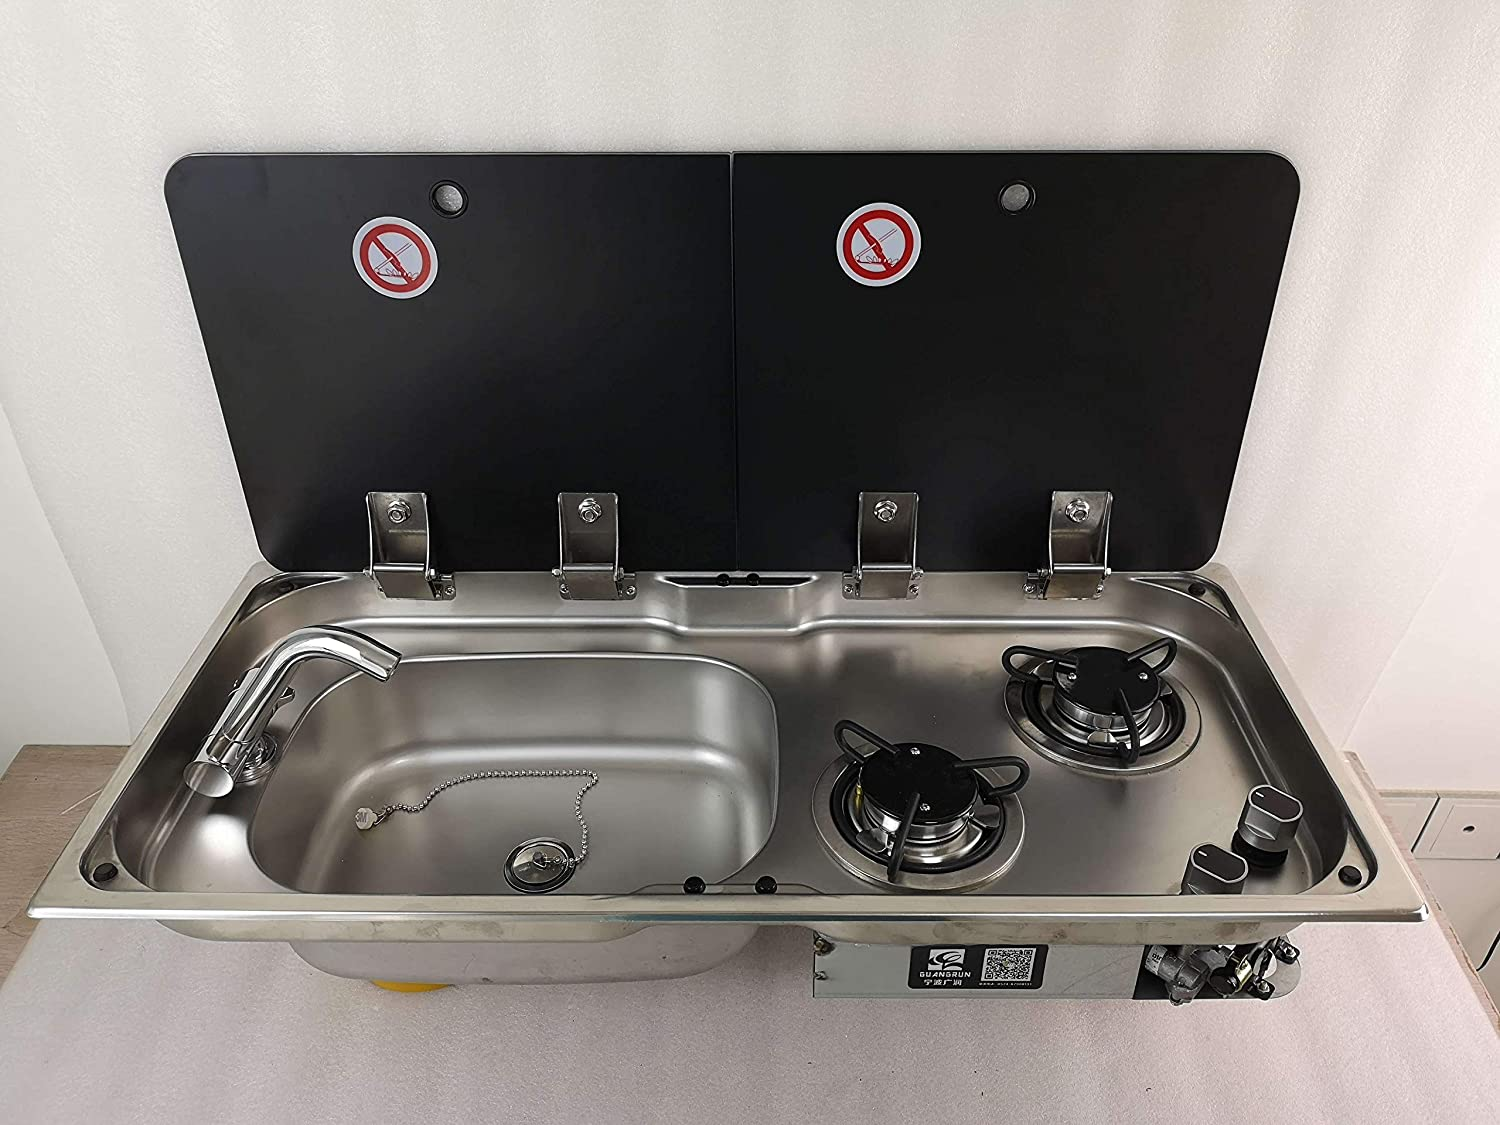 ZY Boat Caravan RV Camper 2 Burner LPG Gas Stove Hob and Sink Combo with 2 Tempered Glass Top 775365150/120mm GR-904LD (with Faucet)